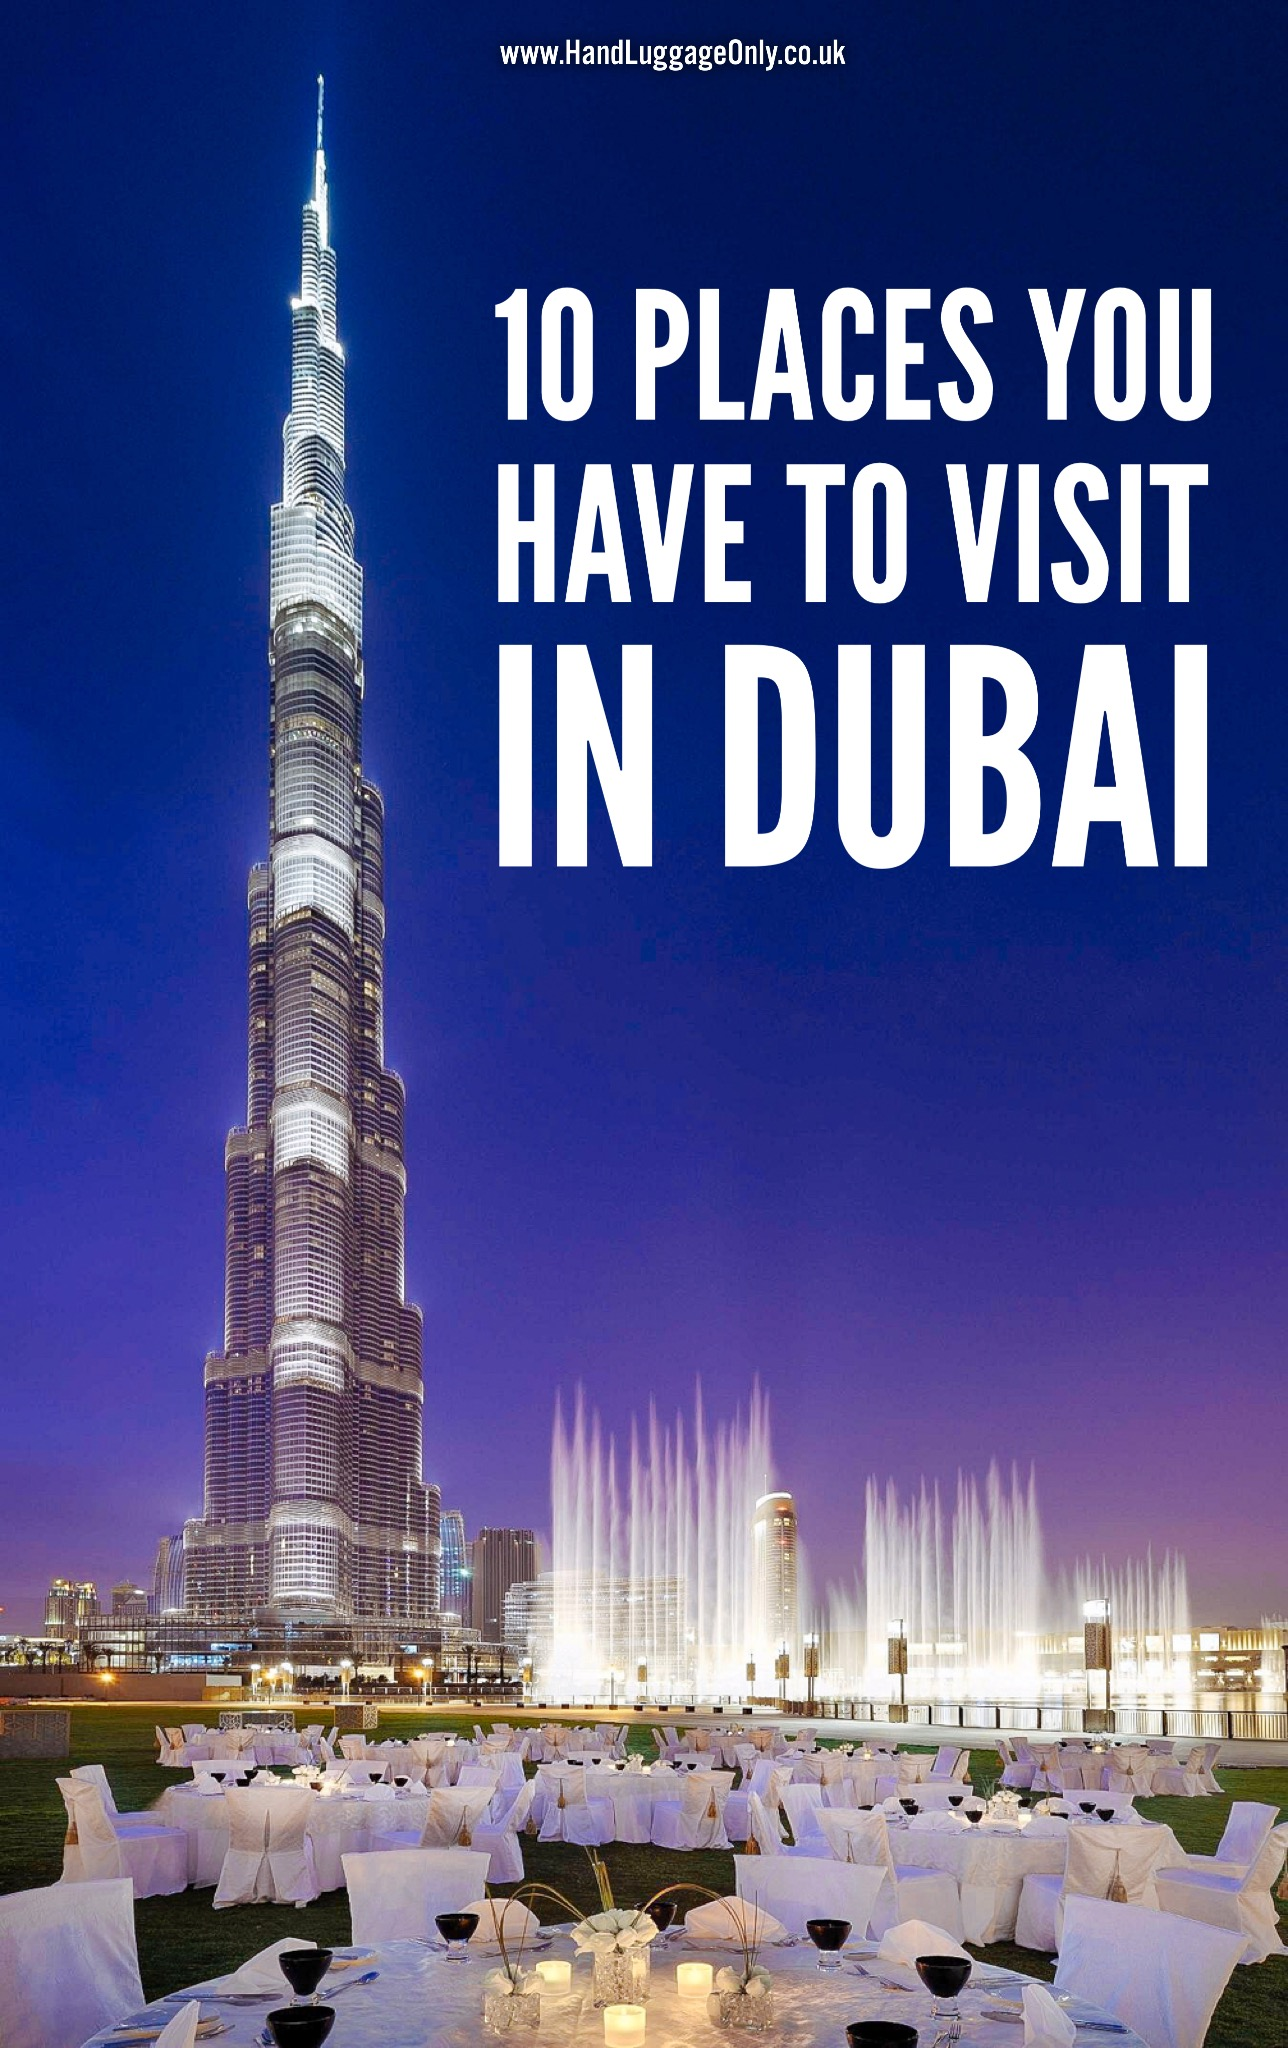 10 Places You Have To Visit In Dubai (1)